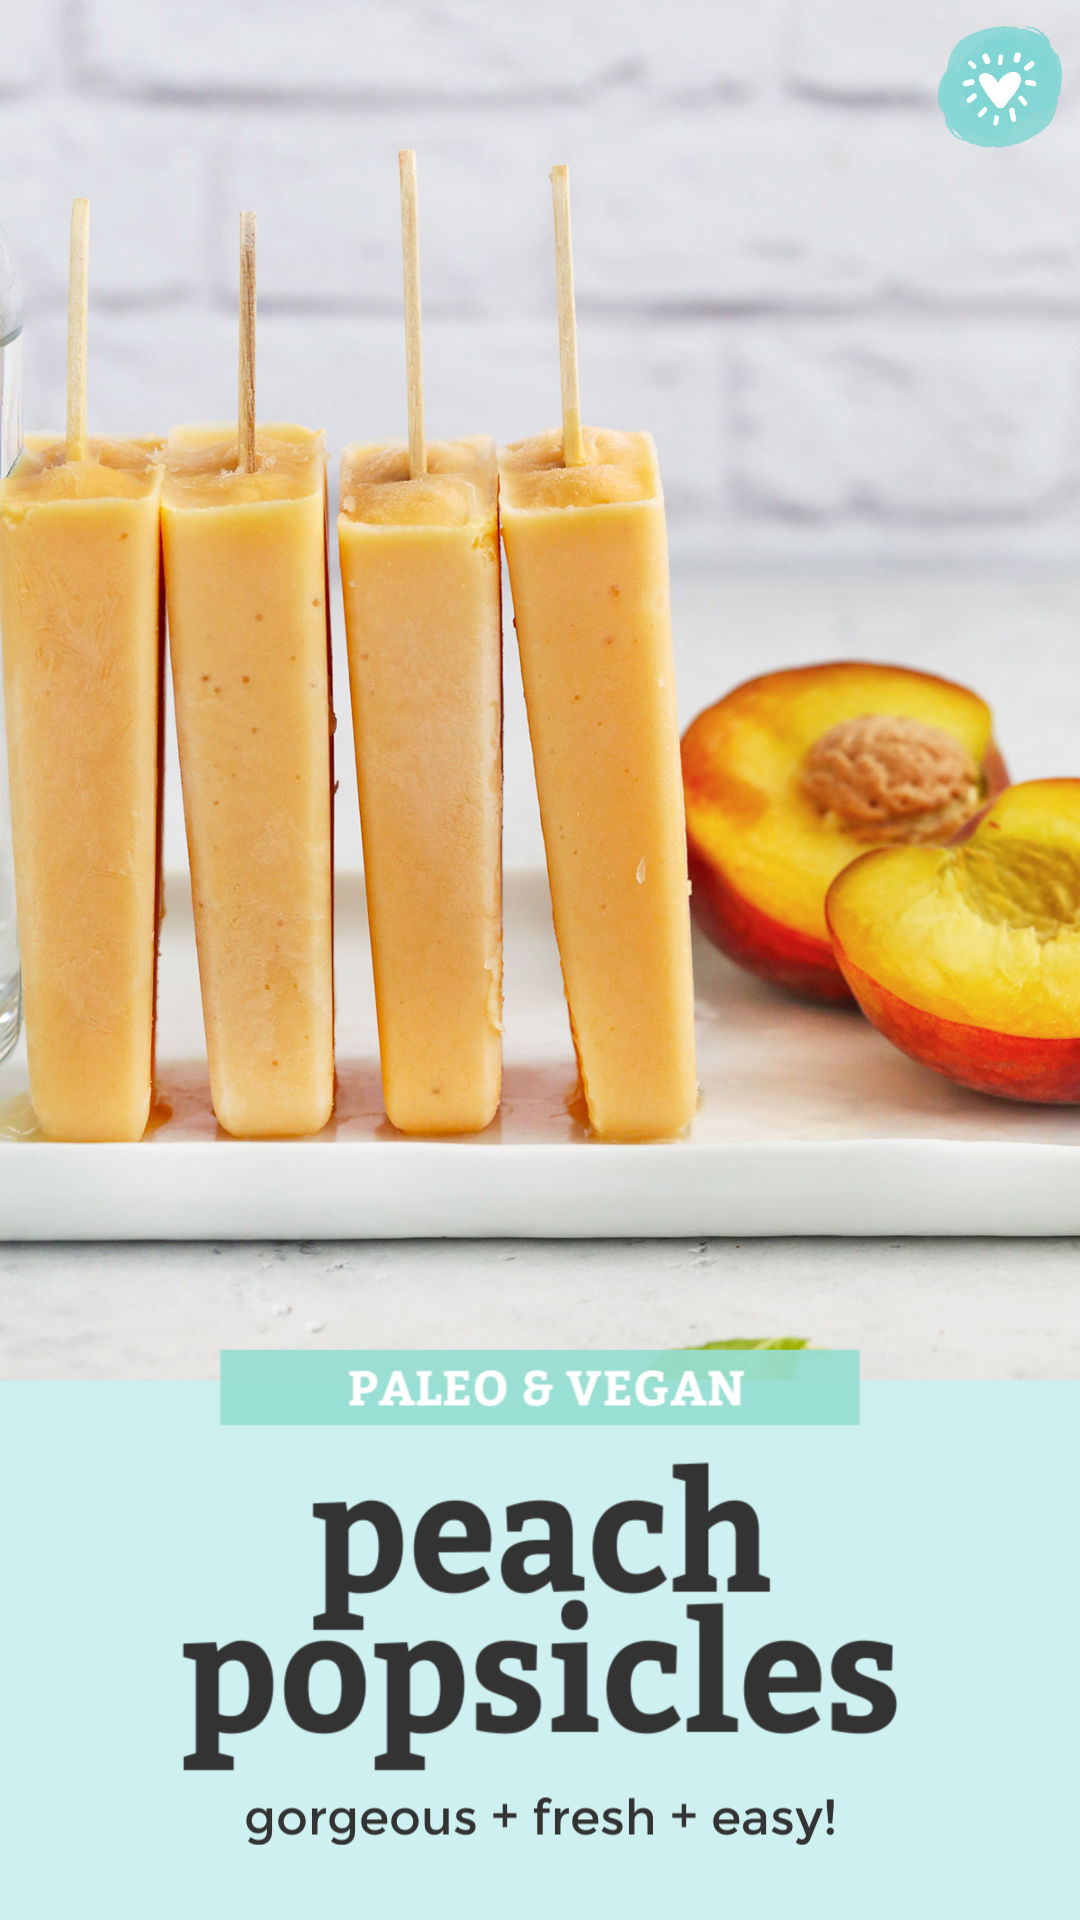 "Peach Popsicles upright leaning on each other with a split peach in the background with text overlay that reads ""Paleo & Vegan Peach Popsicles. gorgeous + fresh + easy!"""